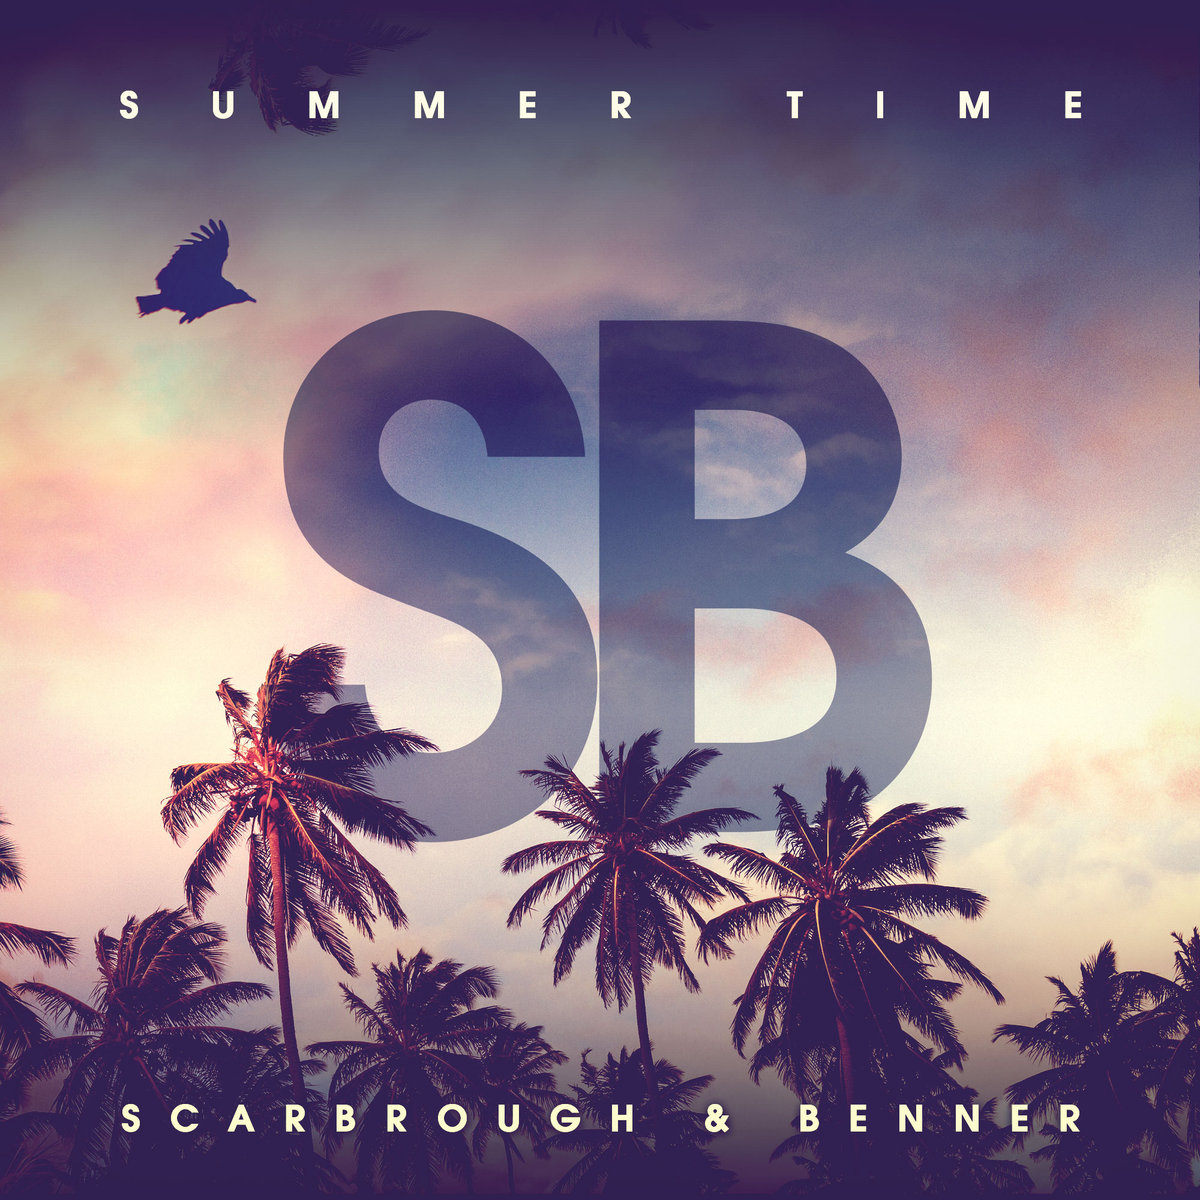 Scarbrough & Benner - Our Love Is Easy @ 'Summertime' album (little dragon, thievery corporation)